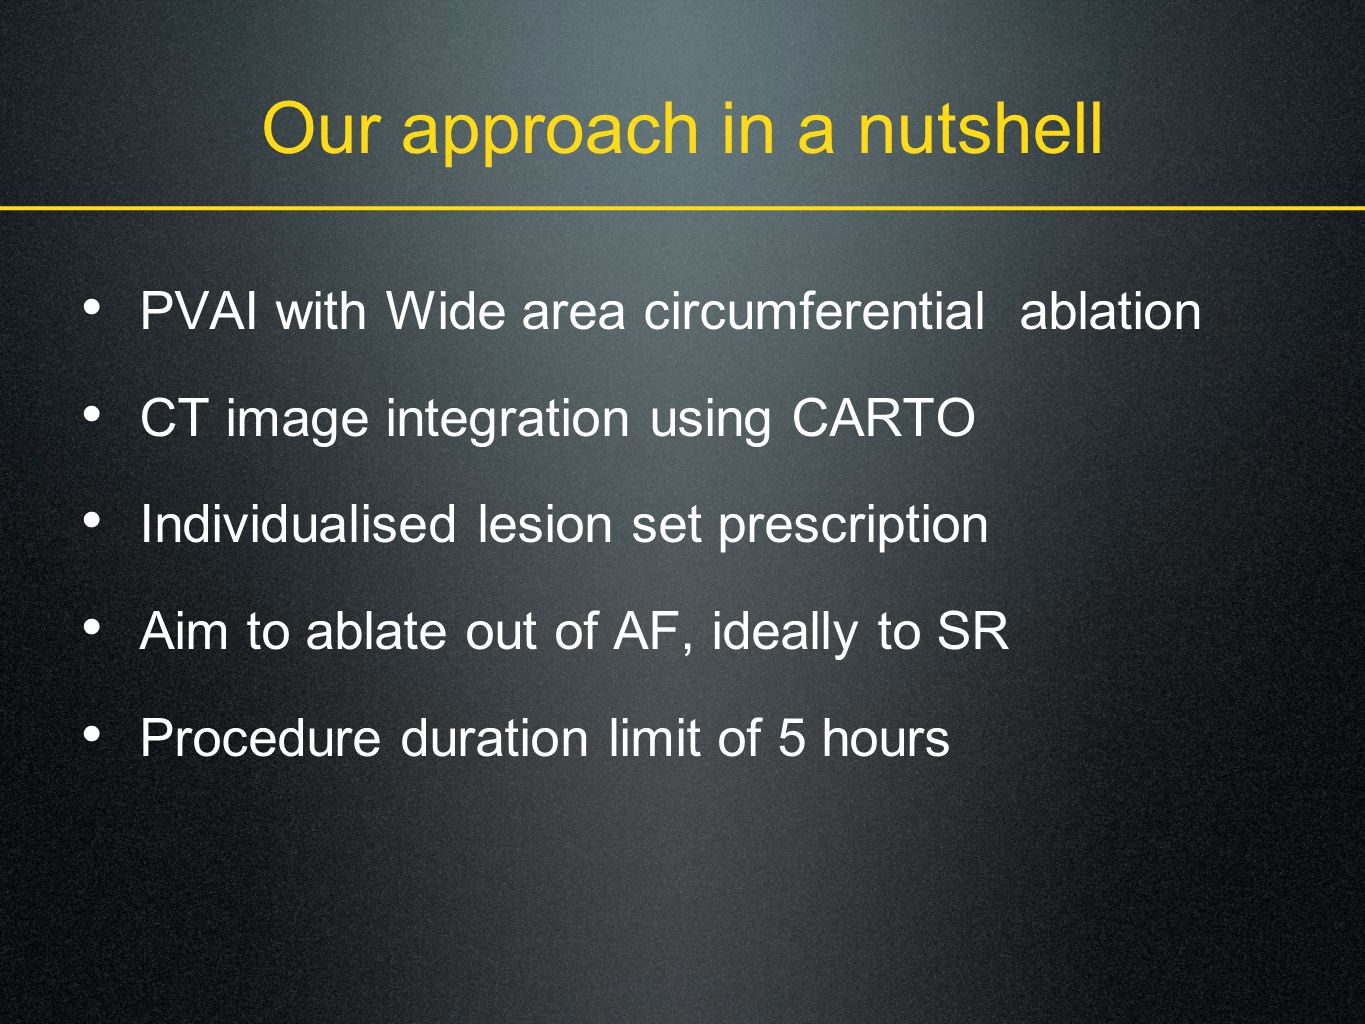 Our approach in a nutshell PVAI with Wide area circumferential ablation CT image integration using CARTO Individualised lesion set prescription Aim to ablate out of AF, ideally to SR Procedure duration limit of 5 hours